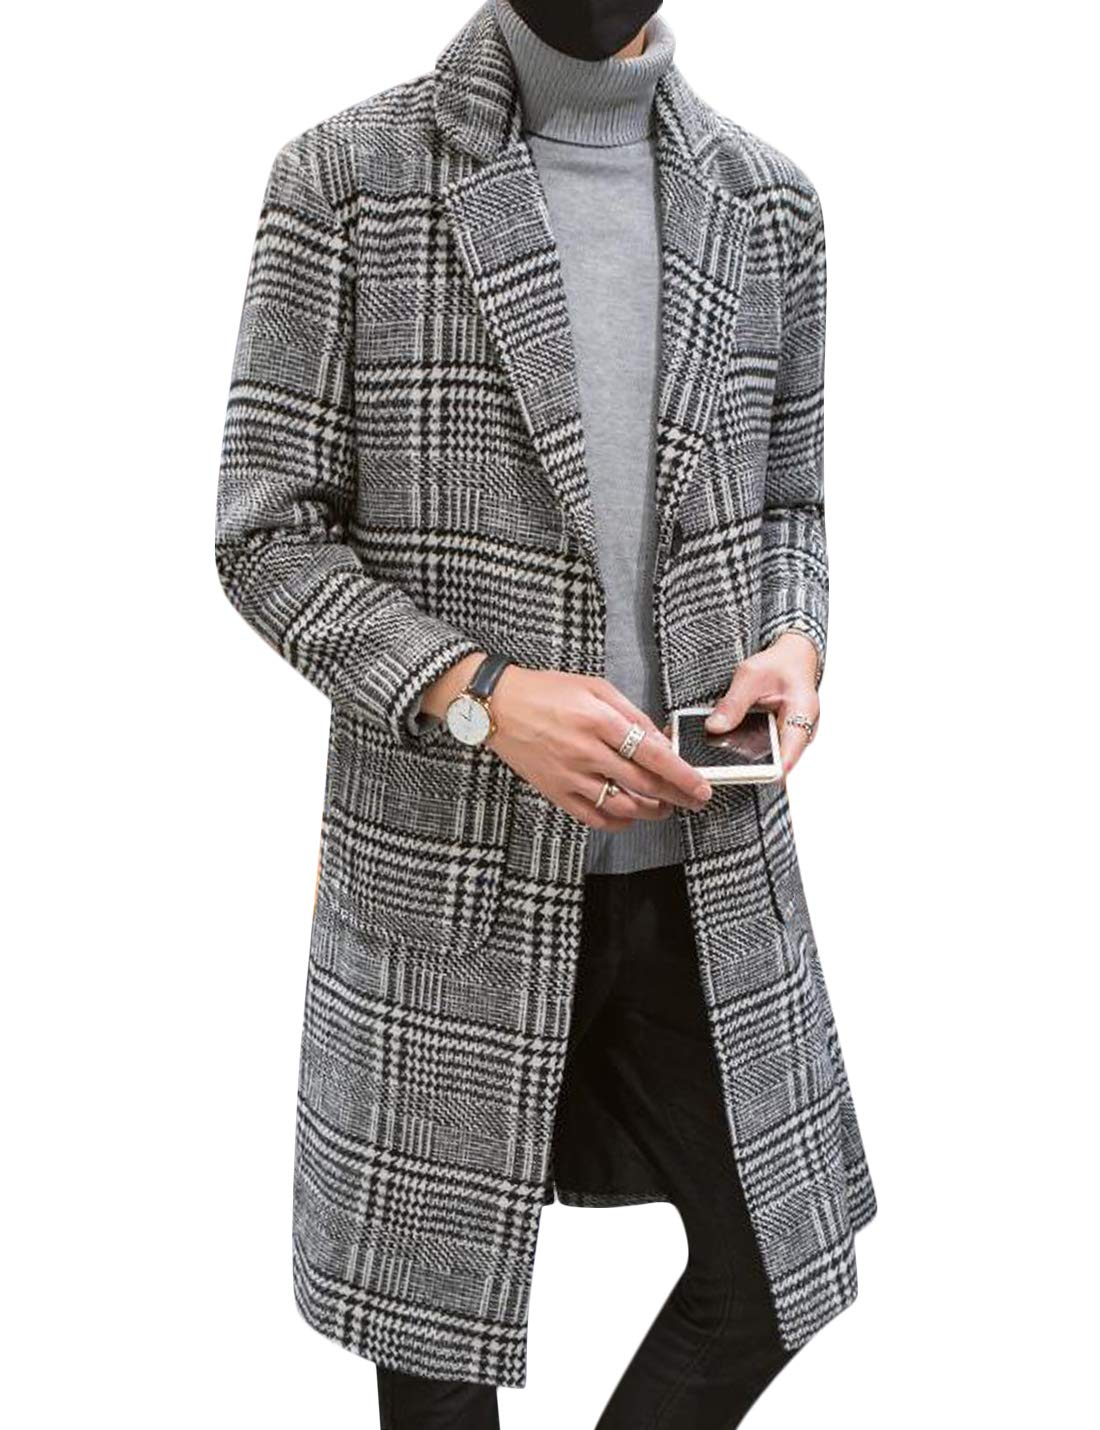 Uaneo Men's Casual Notch Lapel Single Breasted Plaid Mid Long Trench Pea Coat (Gray, Medium) by Uaneo